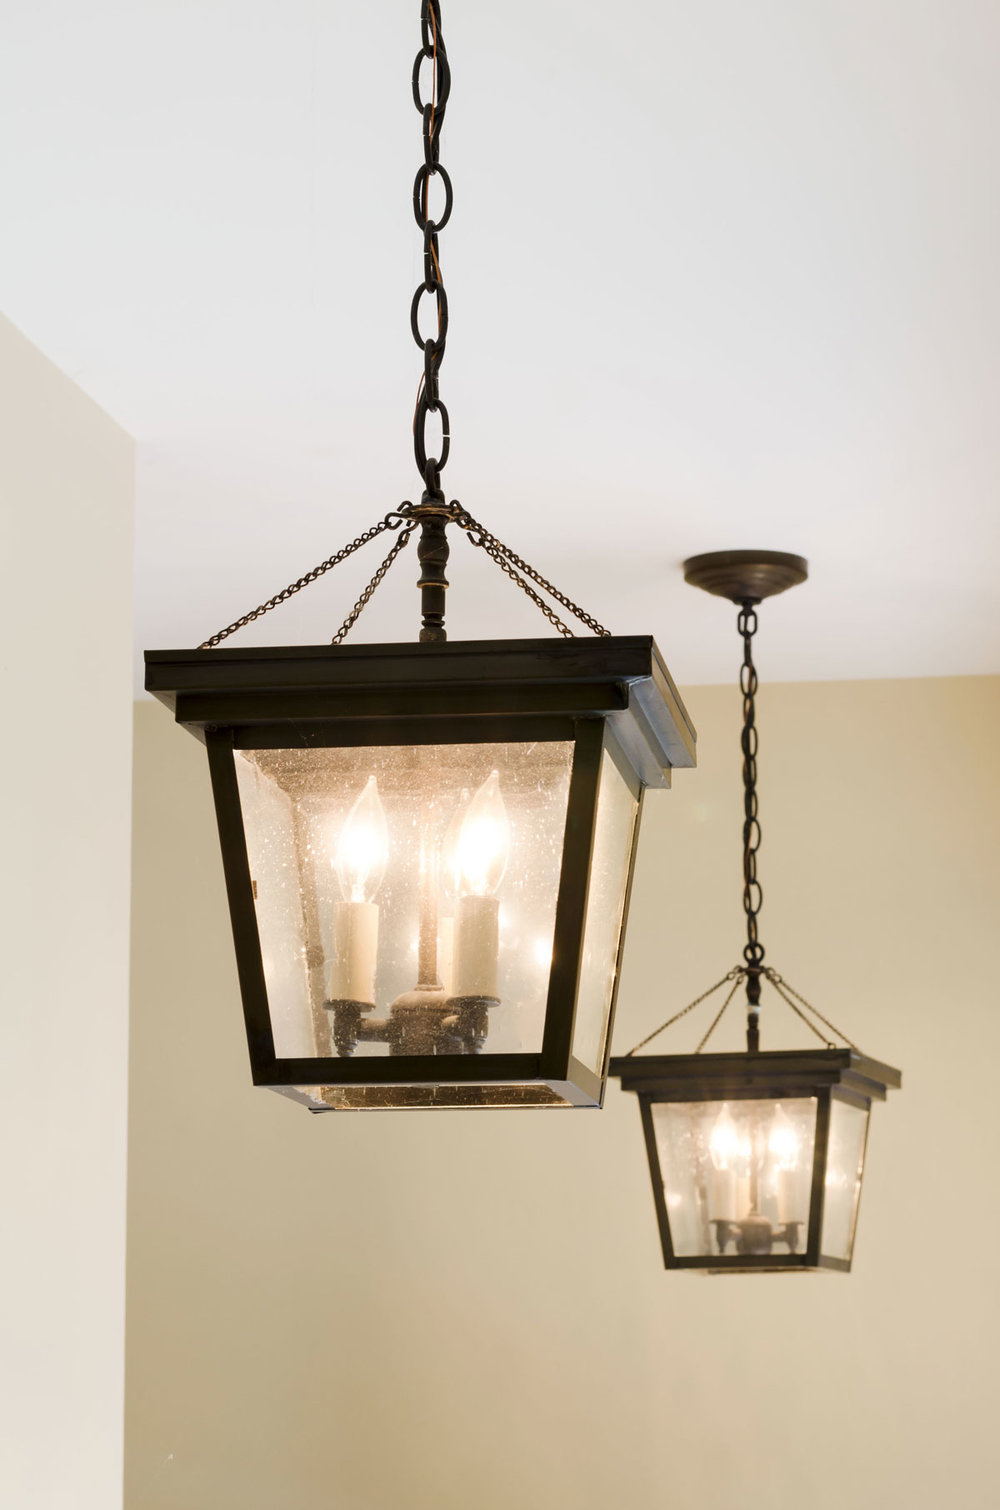 Duxbury, MA lighting desing by Susan Curtis Interiors